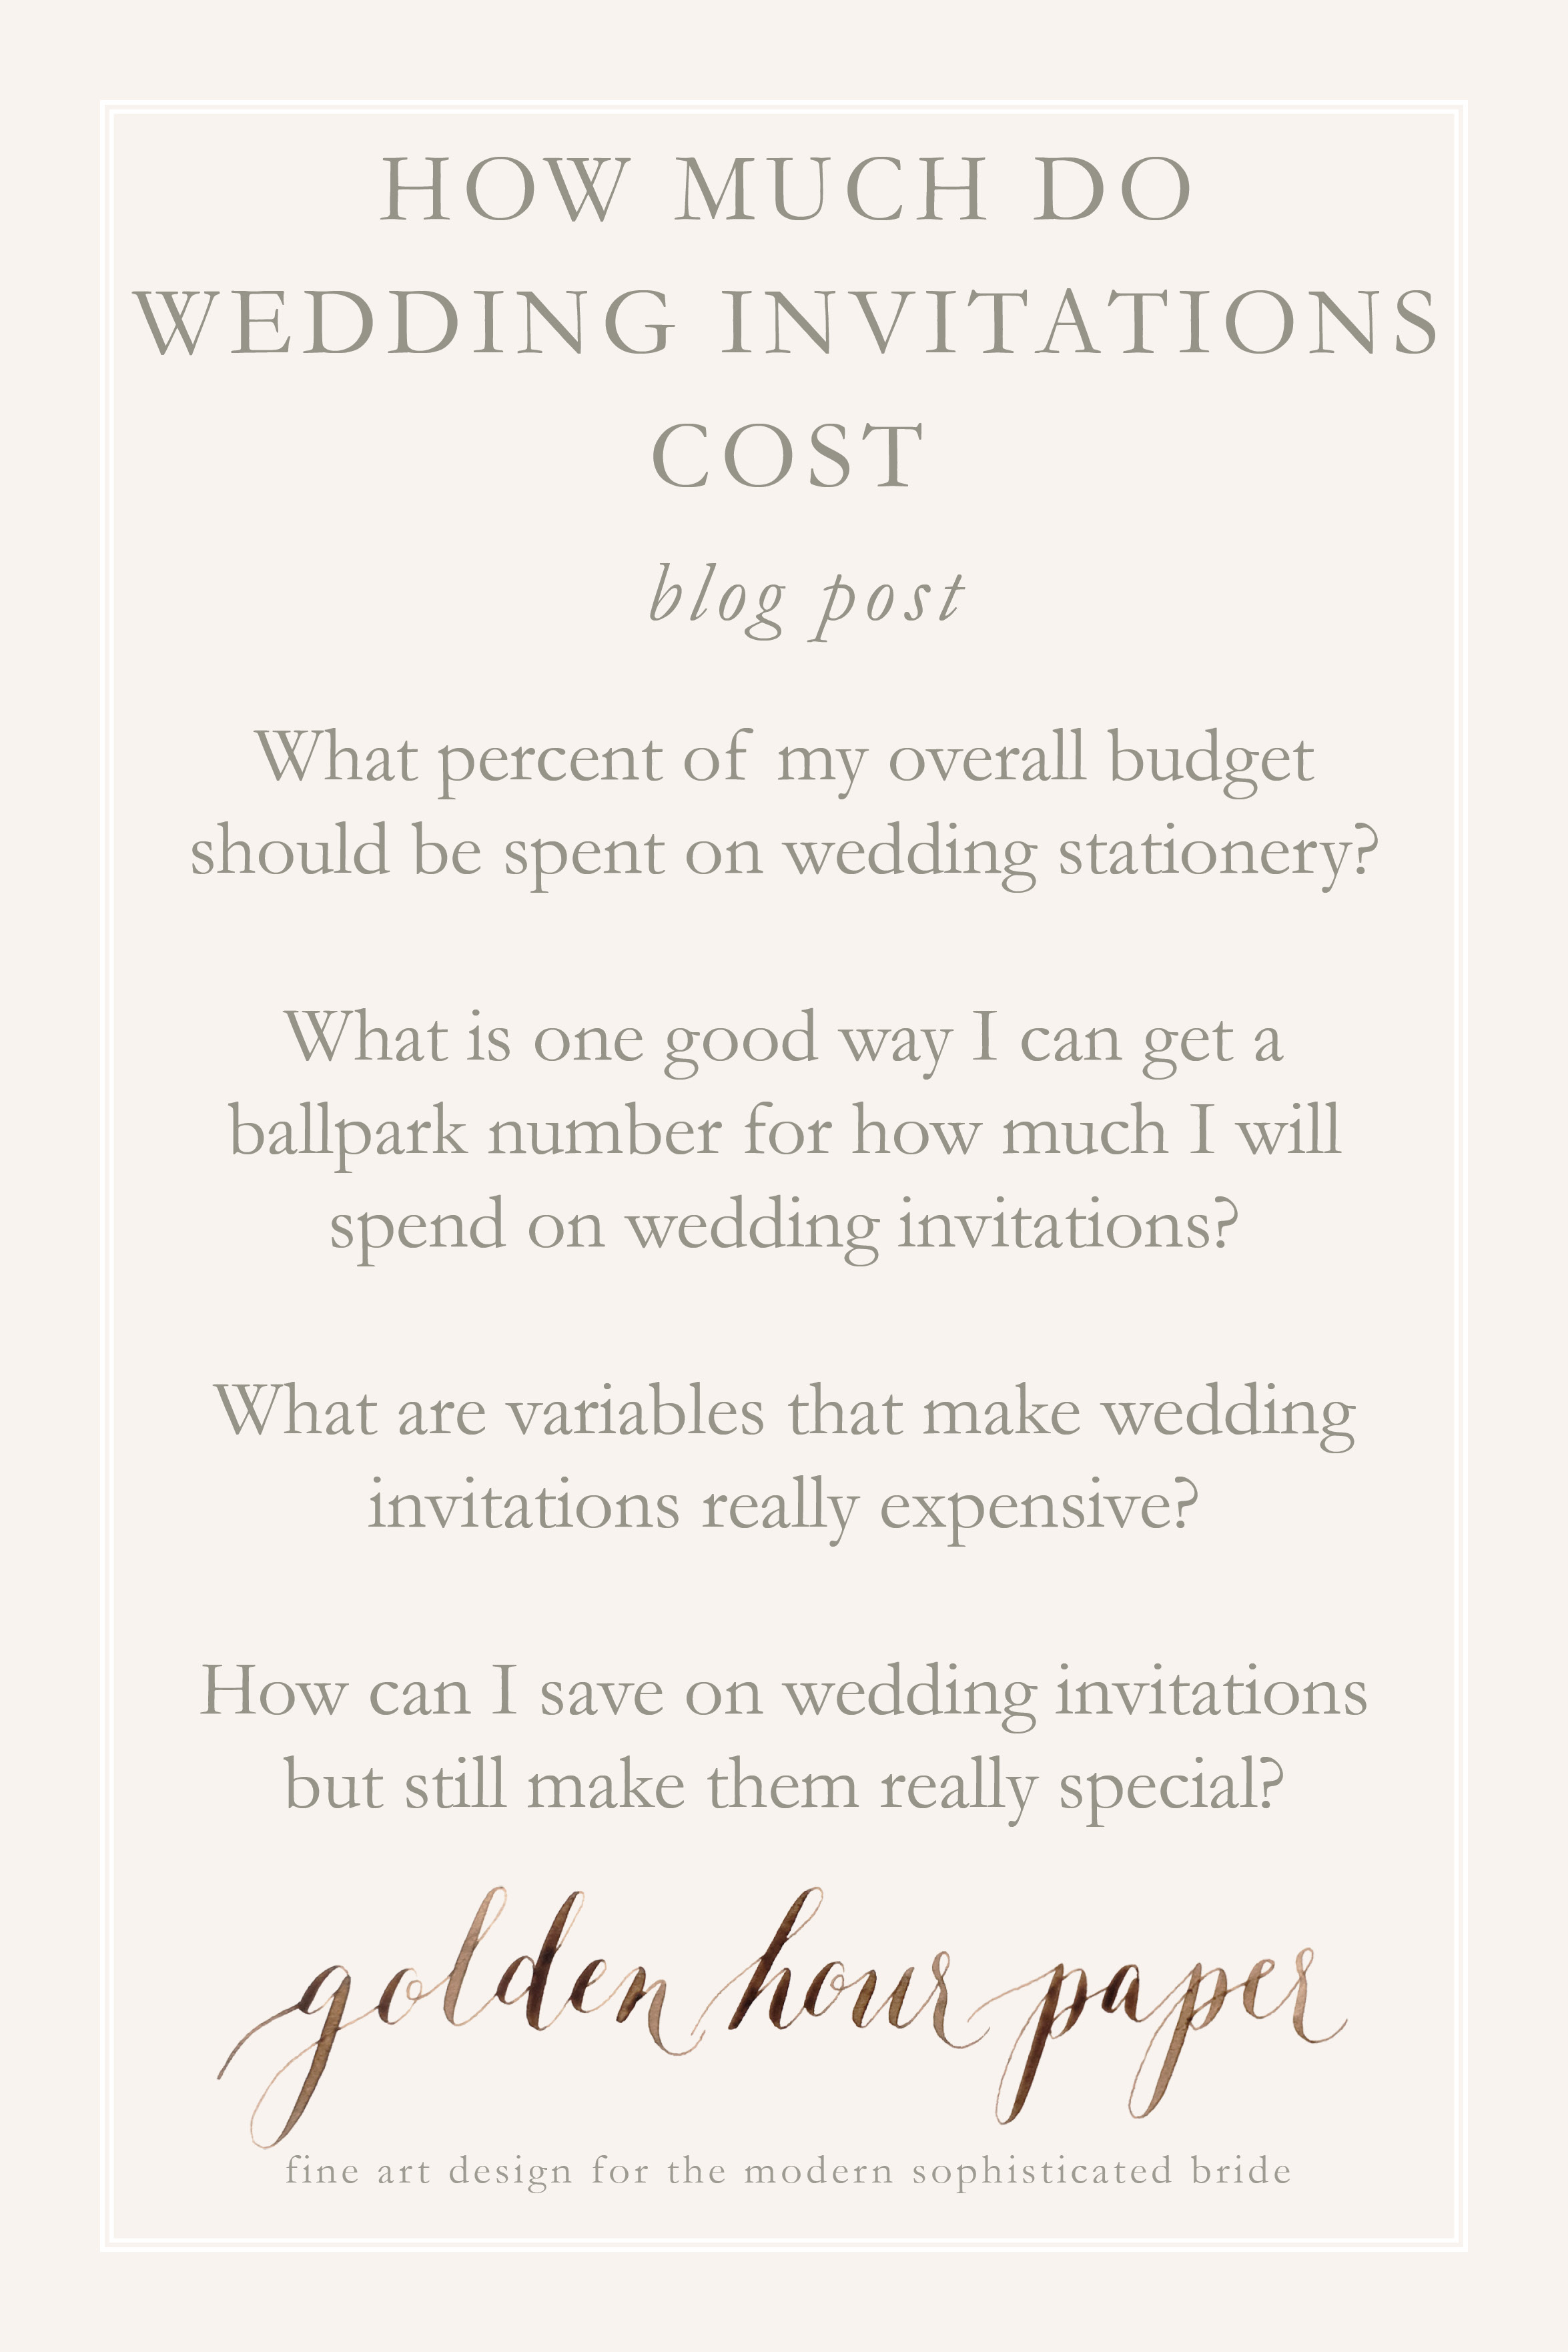 how to save on wedding invitations